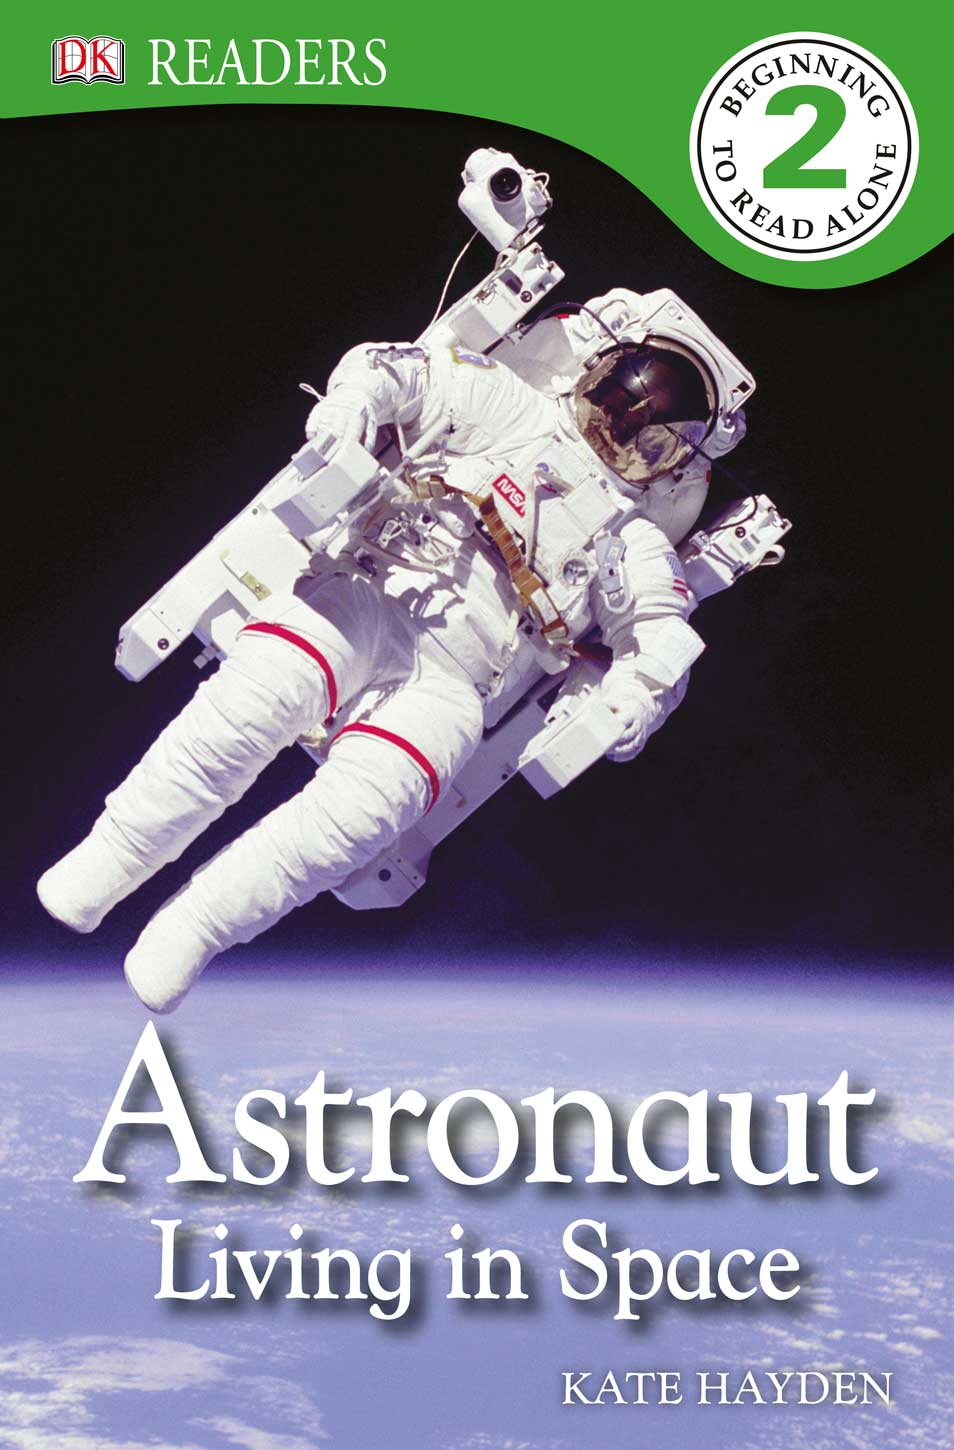 DK Readers: Astronaut: Living in Space By: Kate Hayden